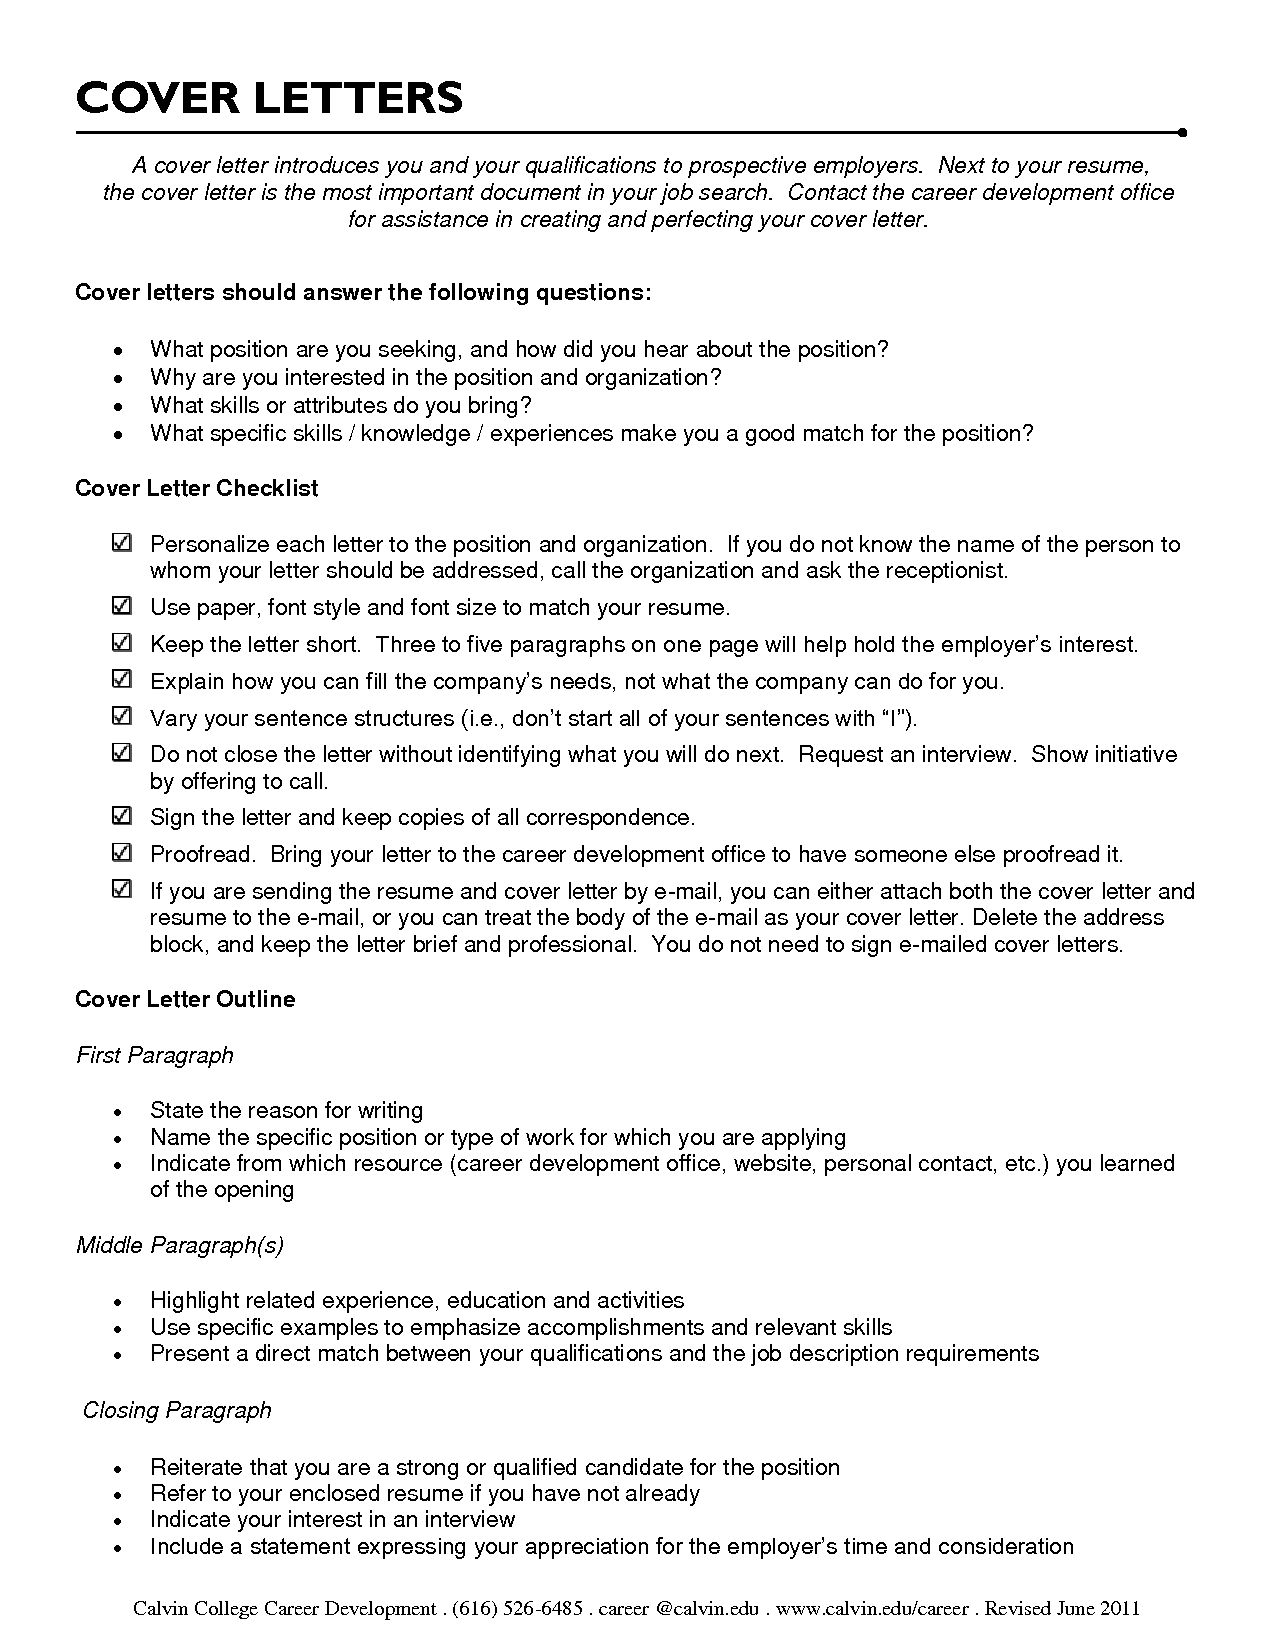 pin on home design mental health resume cover letter format examples microsoft office Resume Mental Health Resume Cover Letter